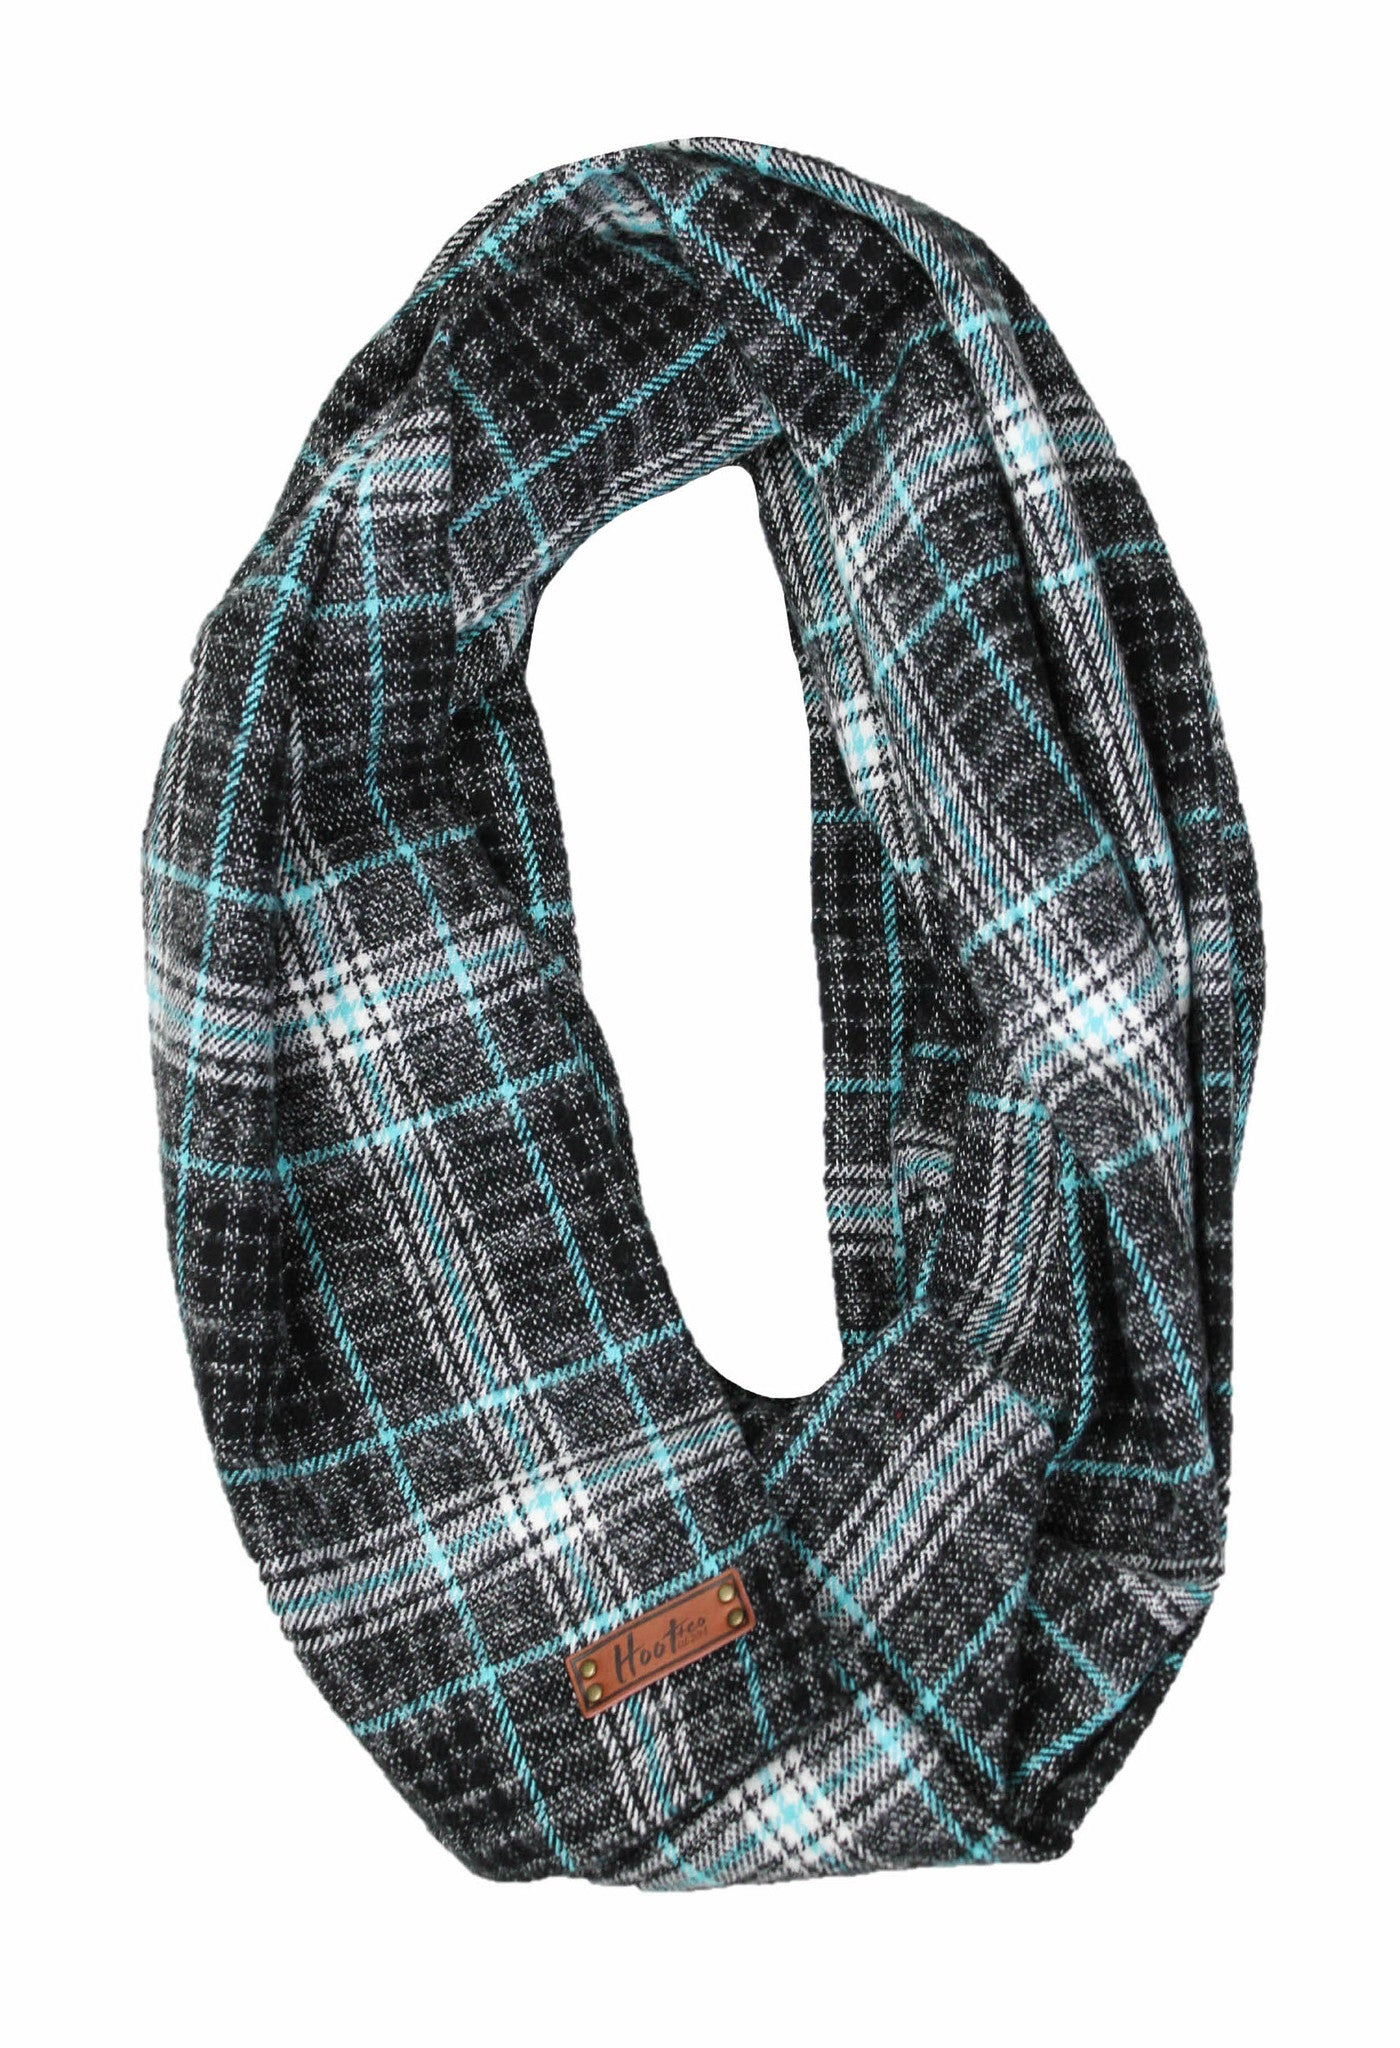 Oliver Flannel Scarf